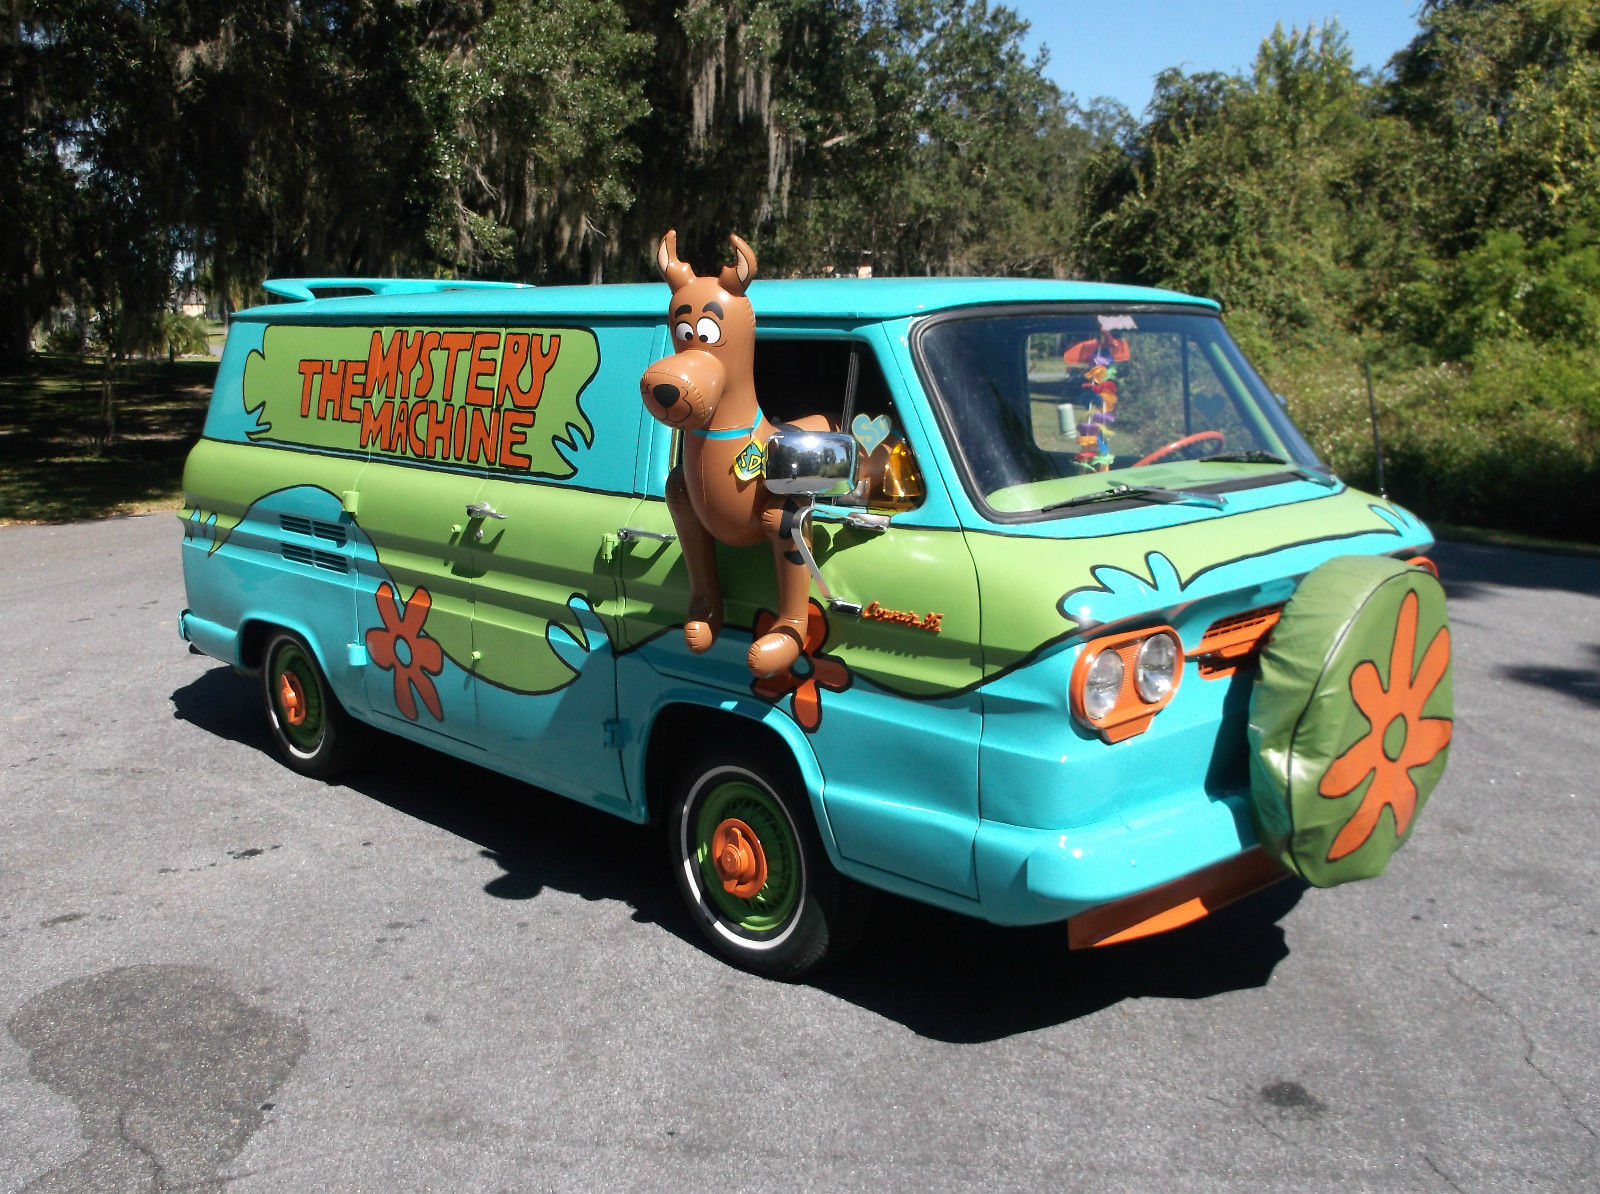 1961 chevy corvair 95 van scooby doo mystery machine rust - Race de scooby doo ...